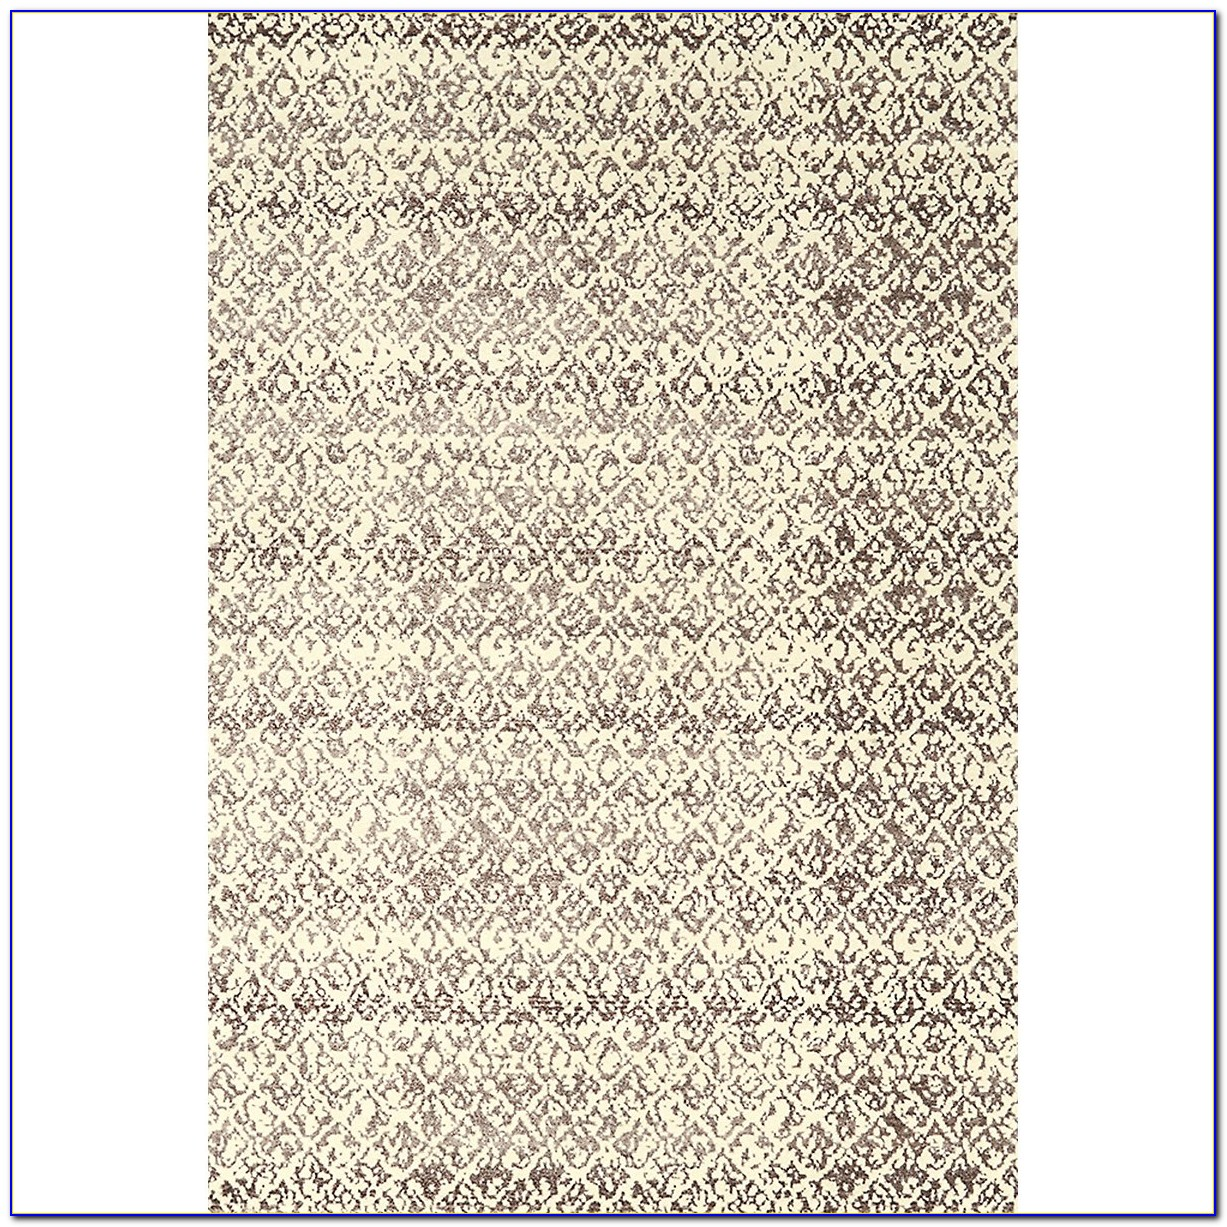 5 By 8 Area Rugs Rug Rugs 5x8 Pier One Area Rugs Cheap